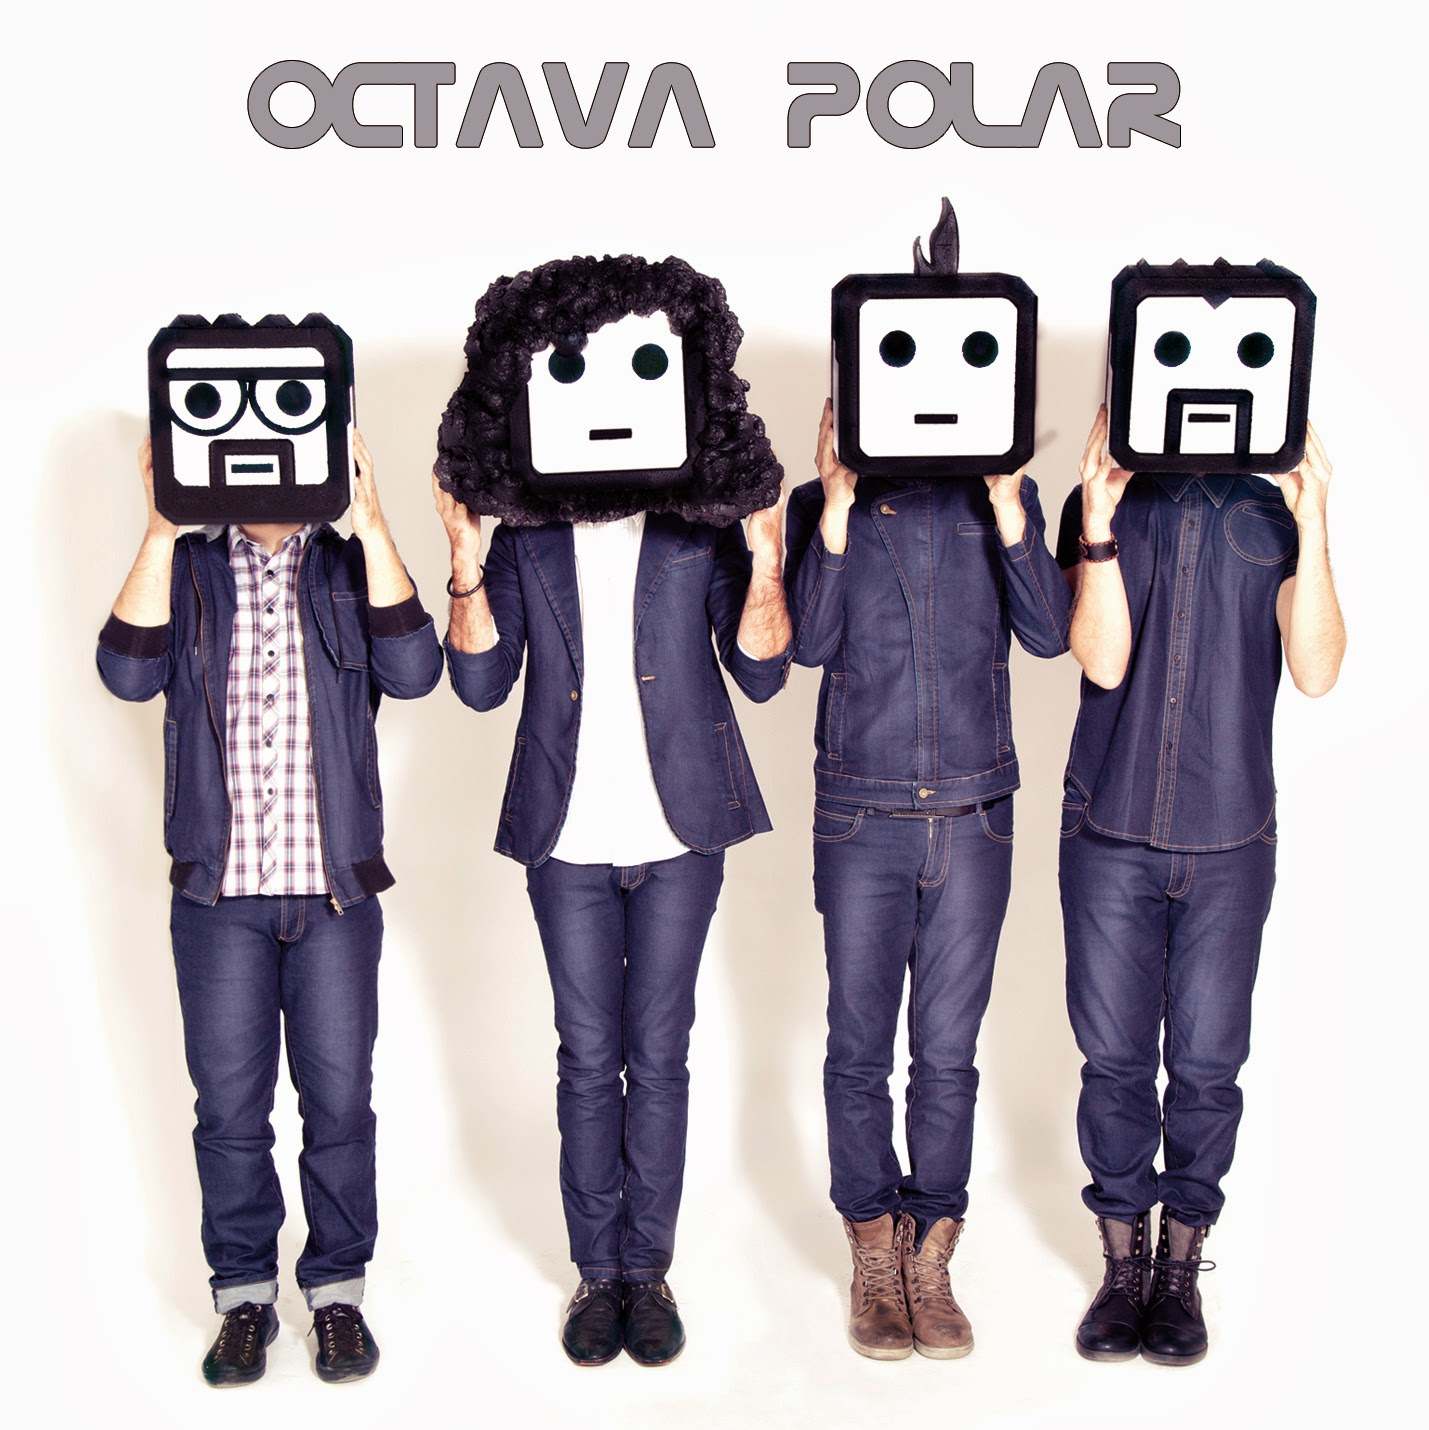 Octava Polar disco